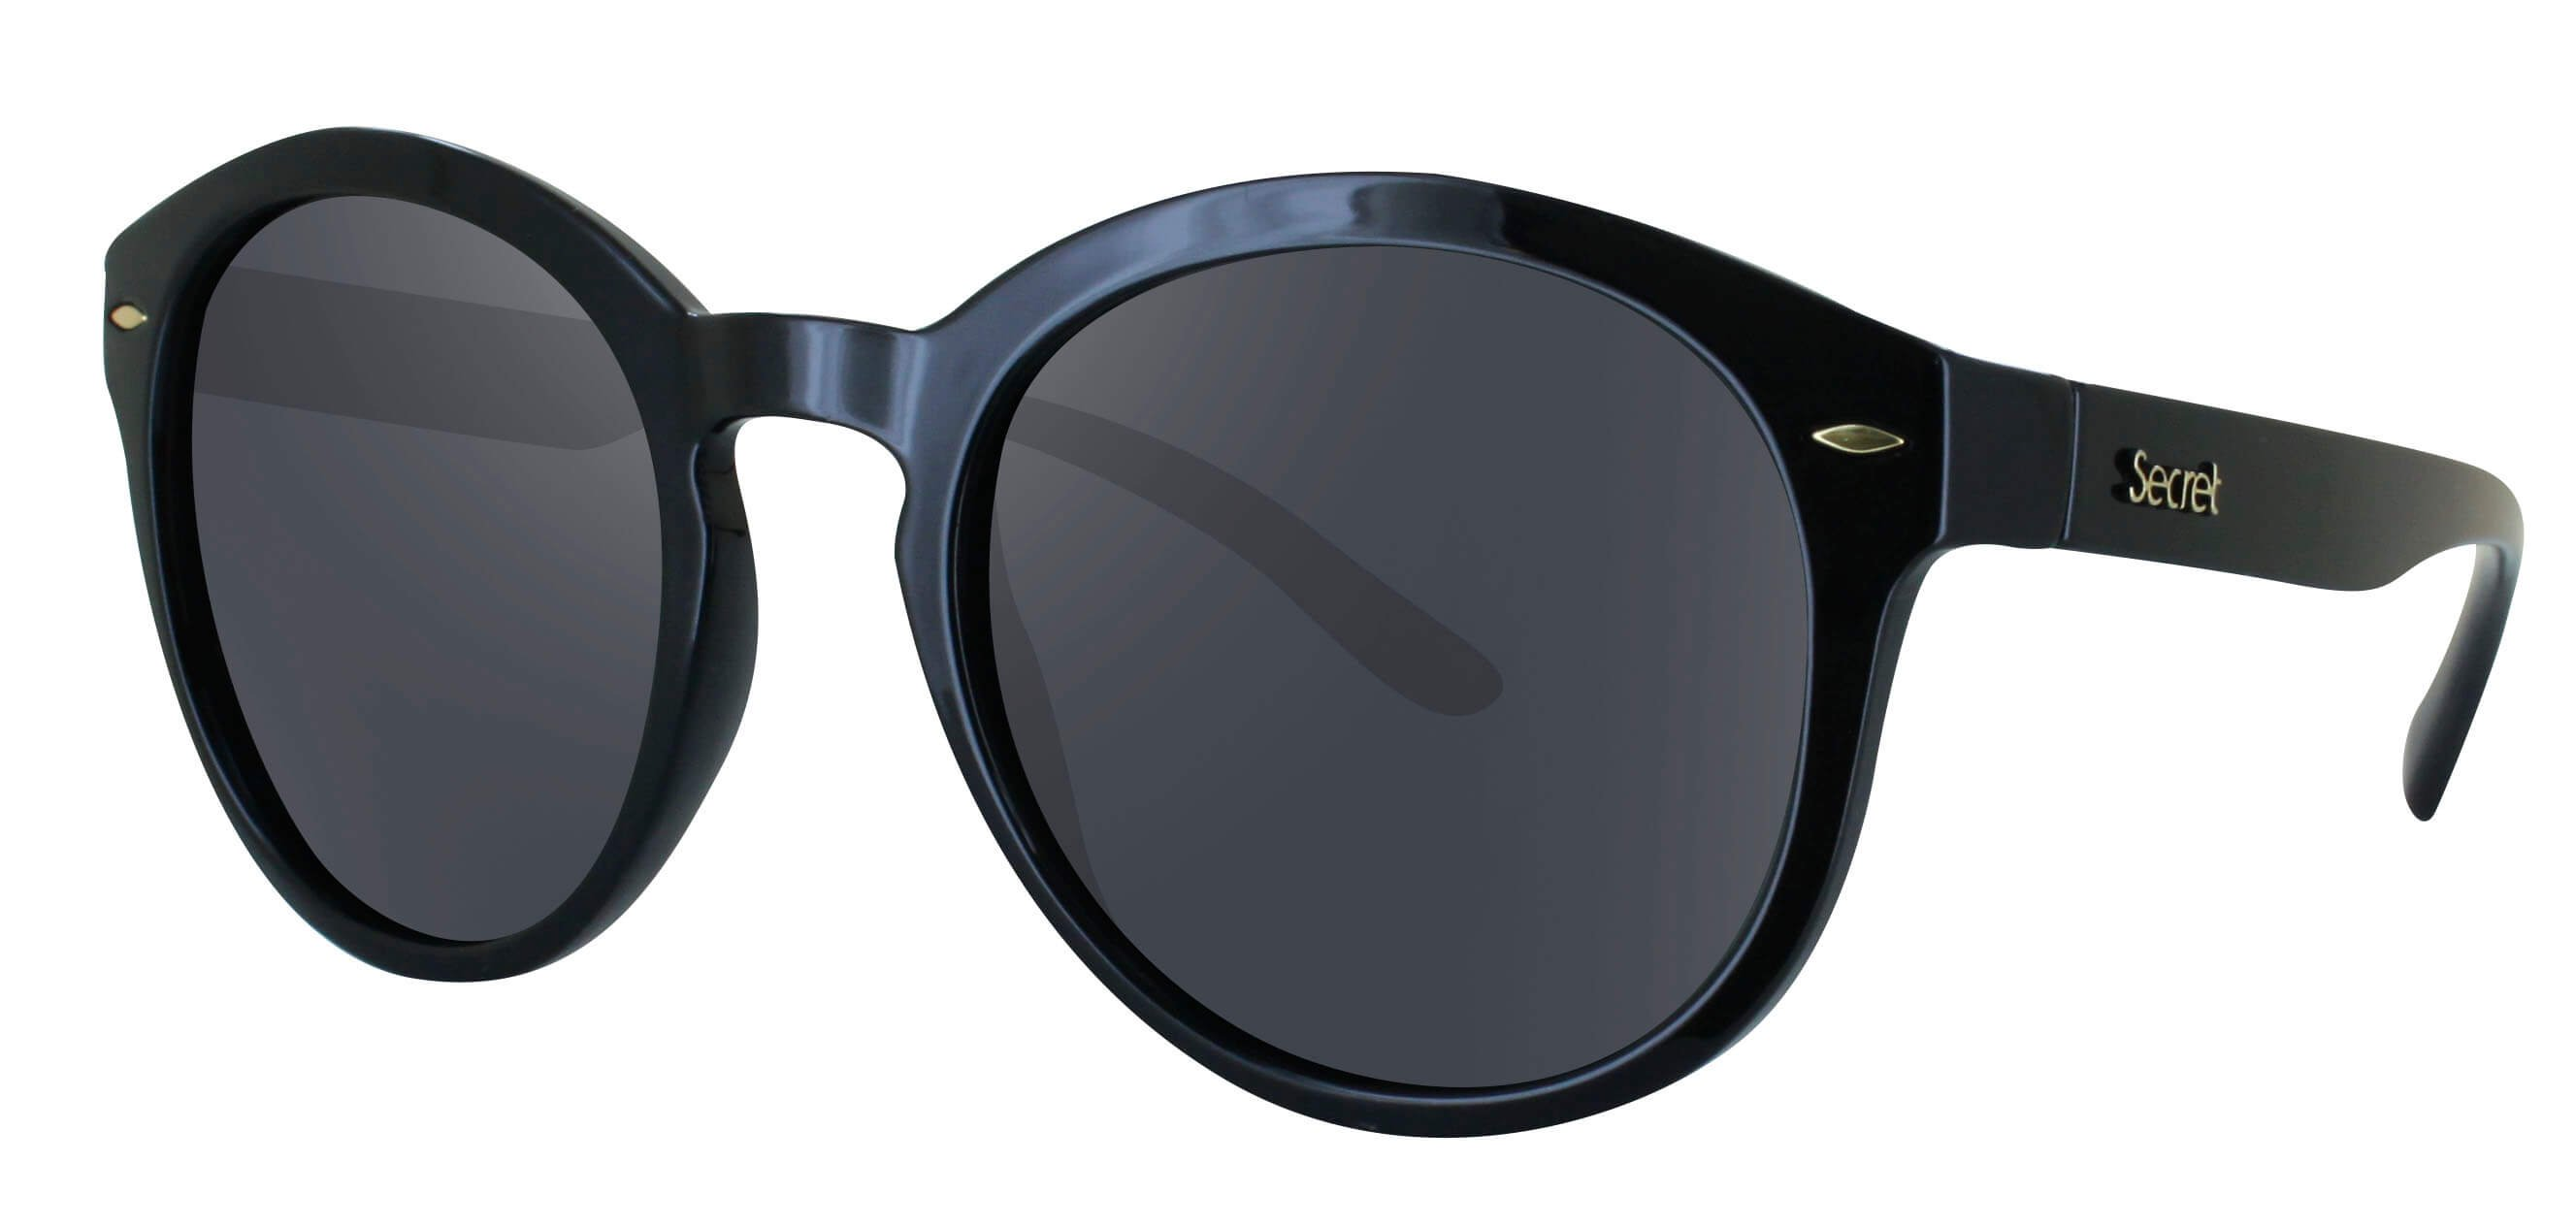 ÓC SECRET WANNABE GLOSS BLACK / POLARIZED GRAY